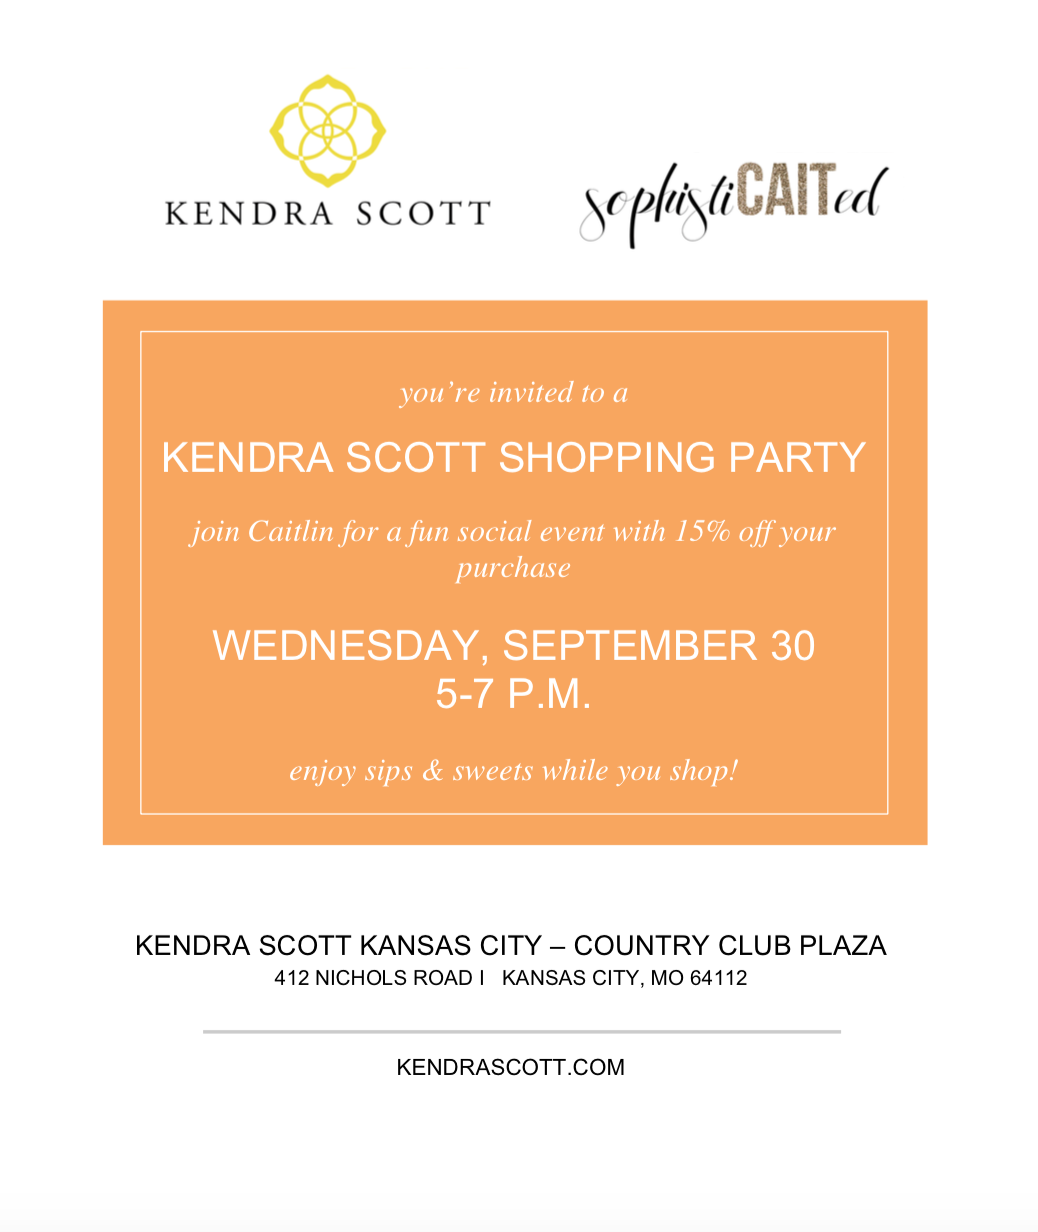 Kendra Scott event in Kansas City with Caitlin Fore from Sophisticaited